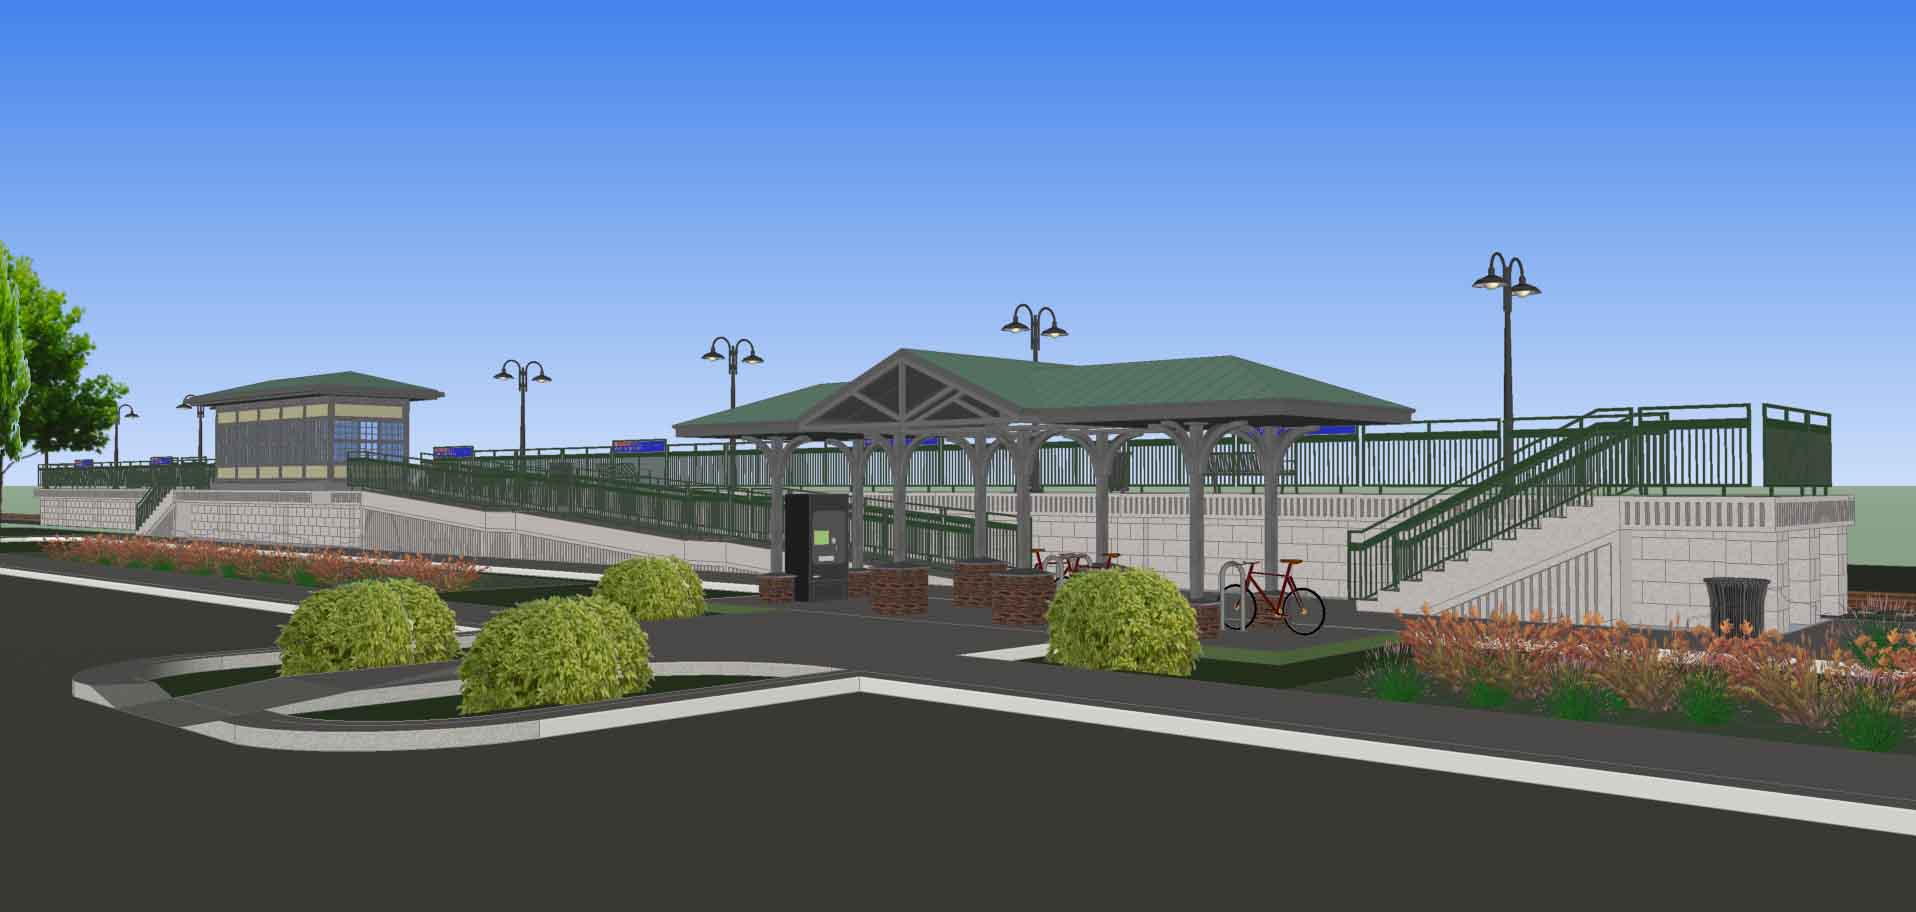 Rendering of 9th Street Station in Lansdale